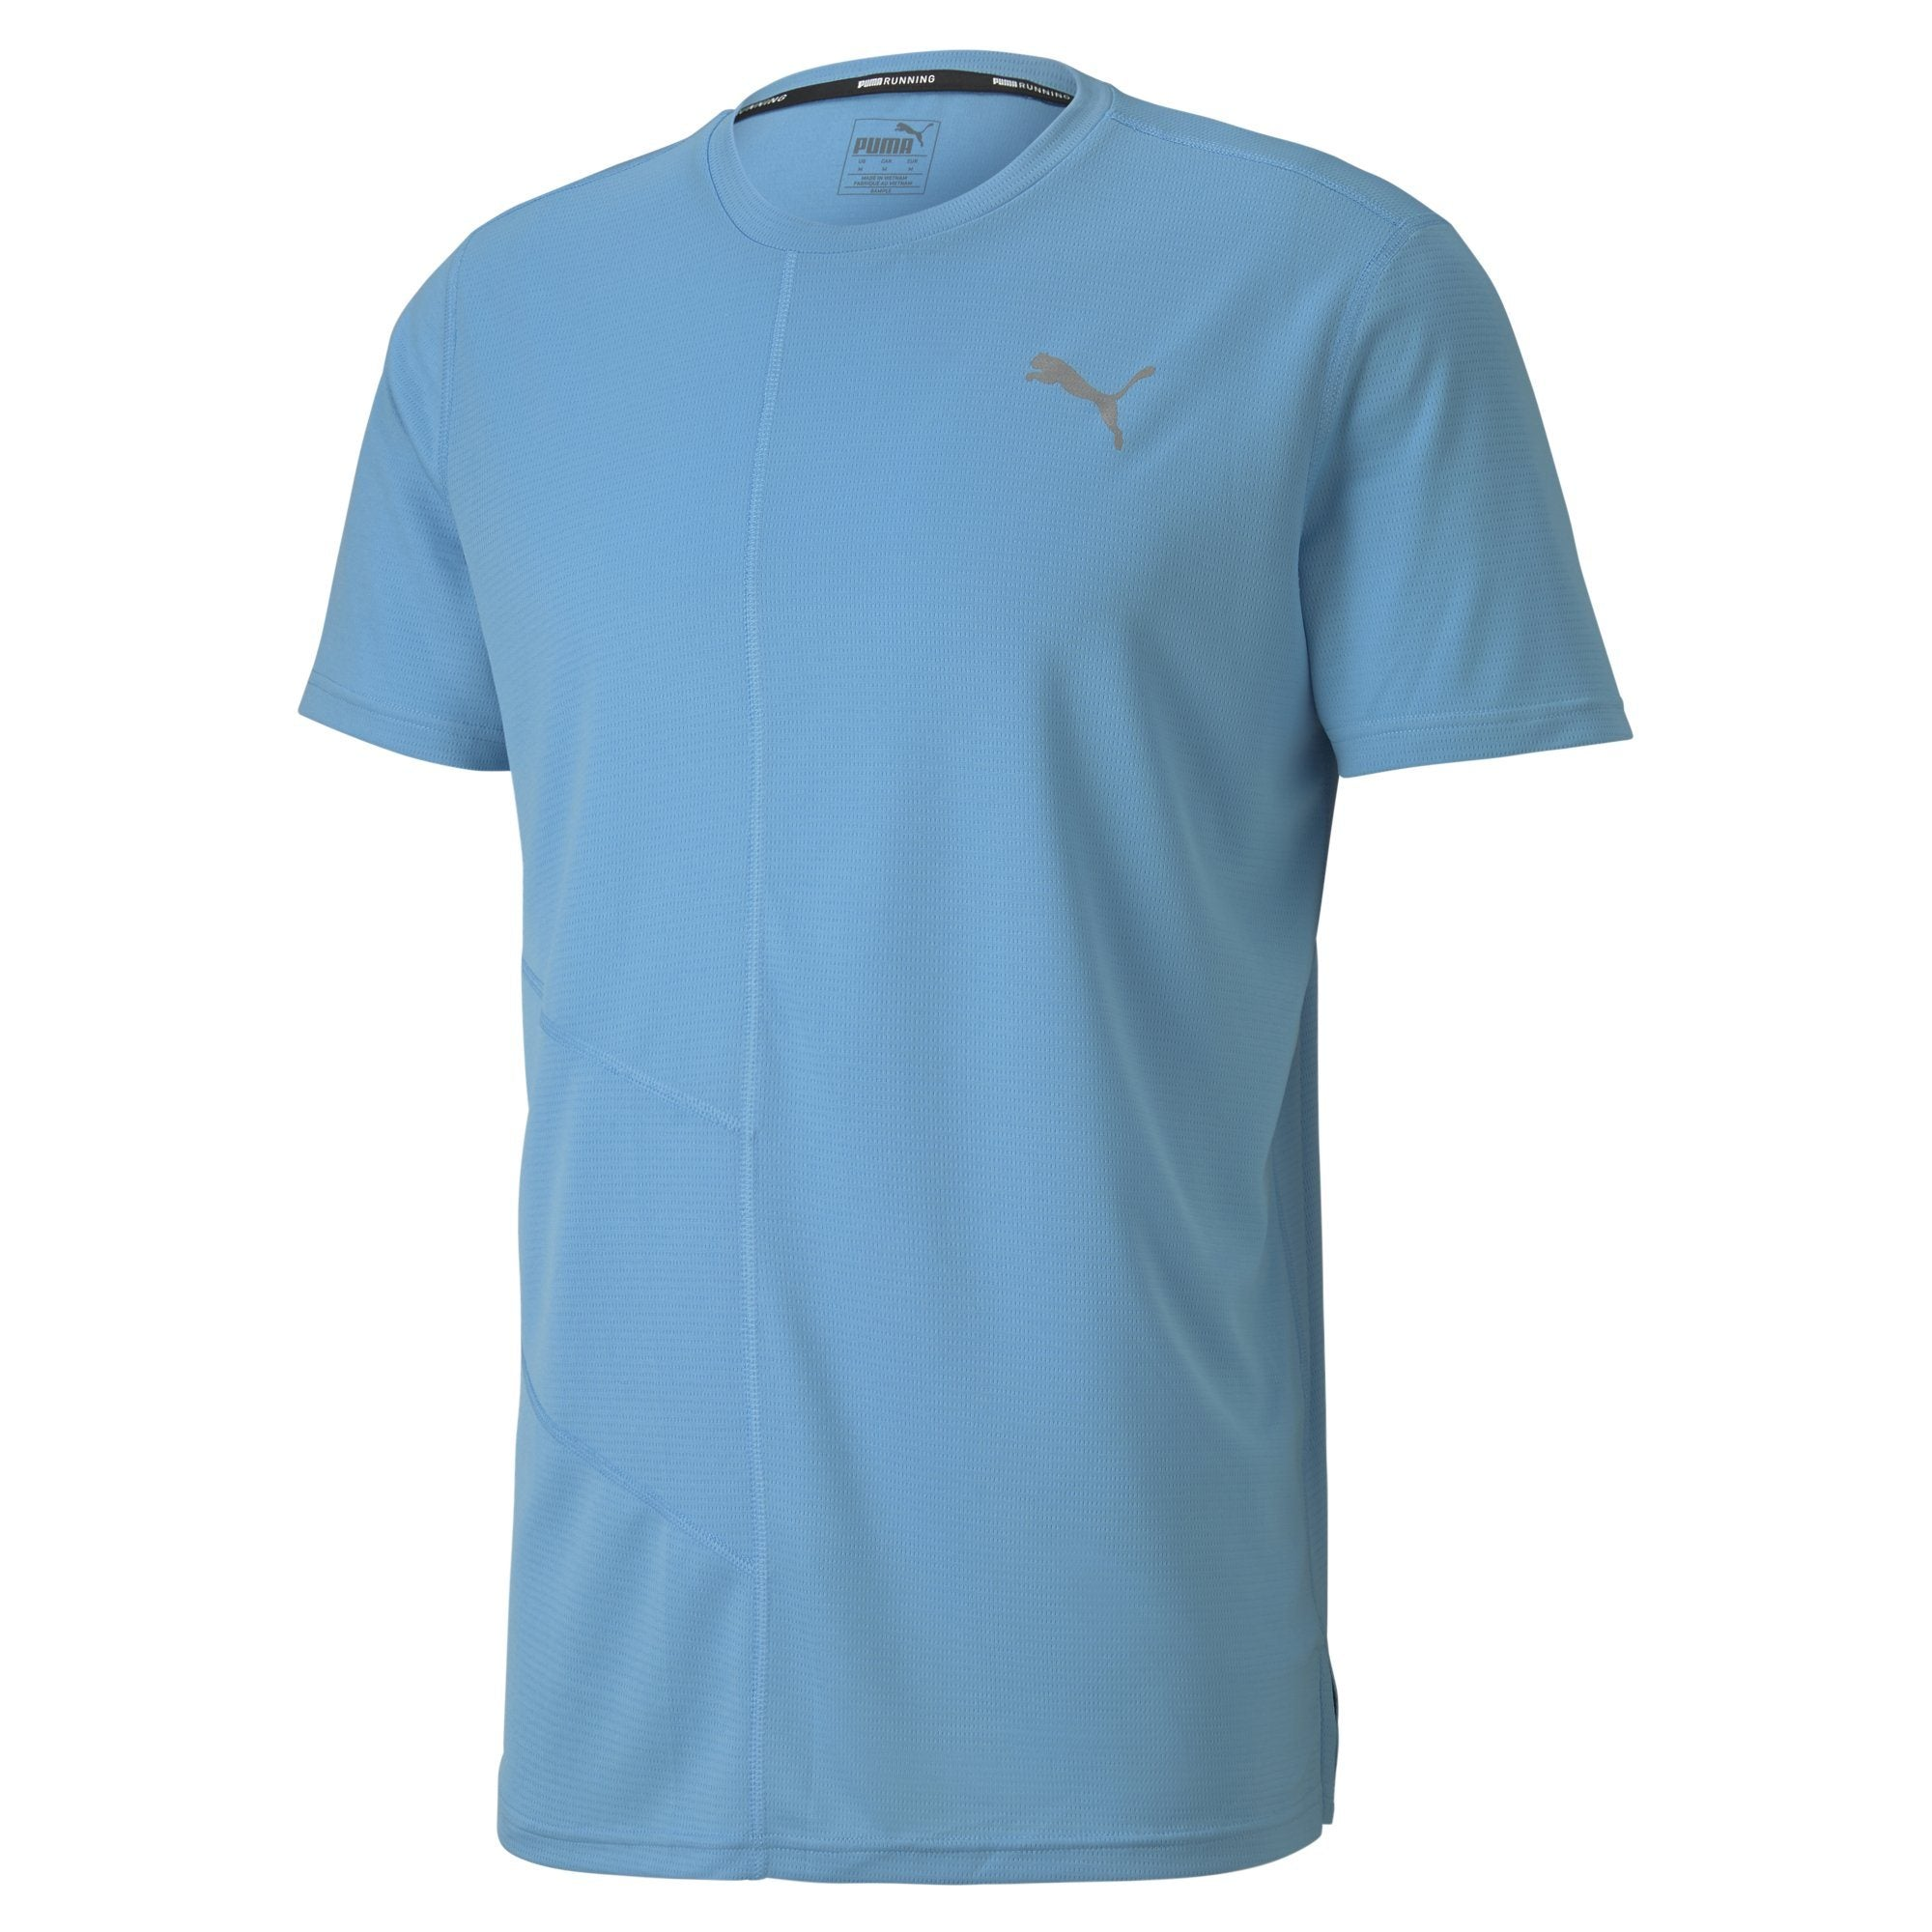 Puma Ignite S/S Tee - Ethereal Blue Apparel - Men Puma